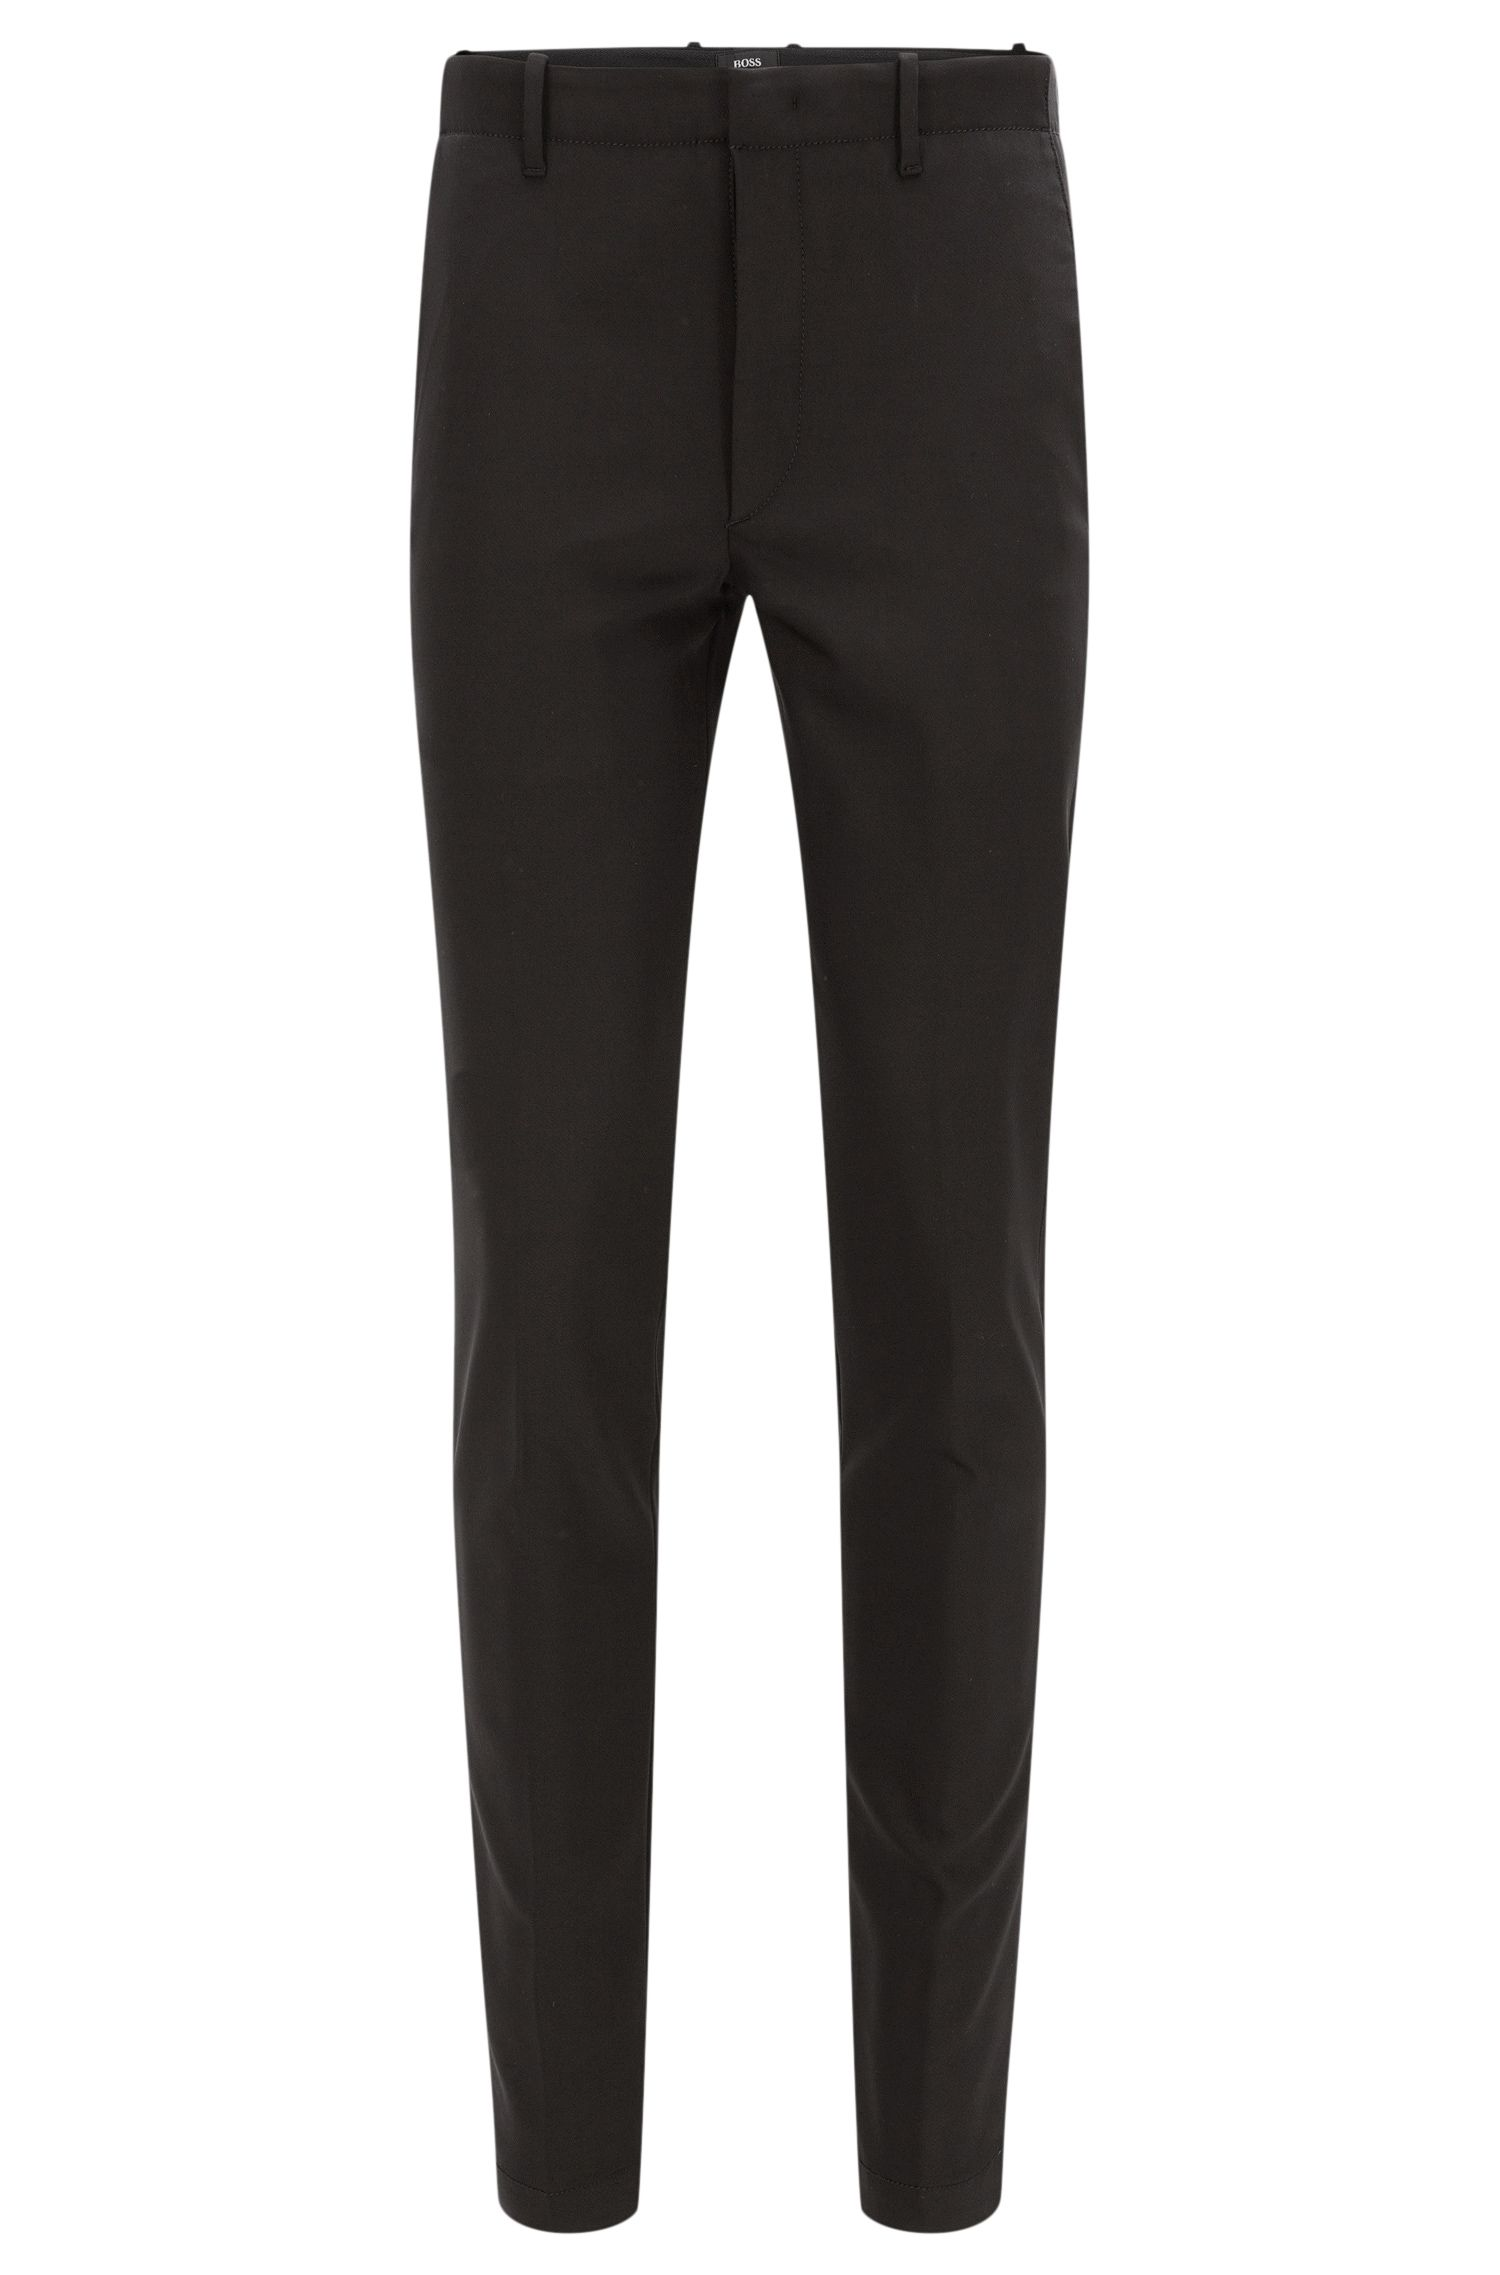 'Kaito MB W' | Slim Fit, Stretch Cotton Blend Chinos